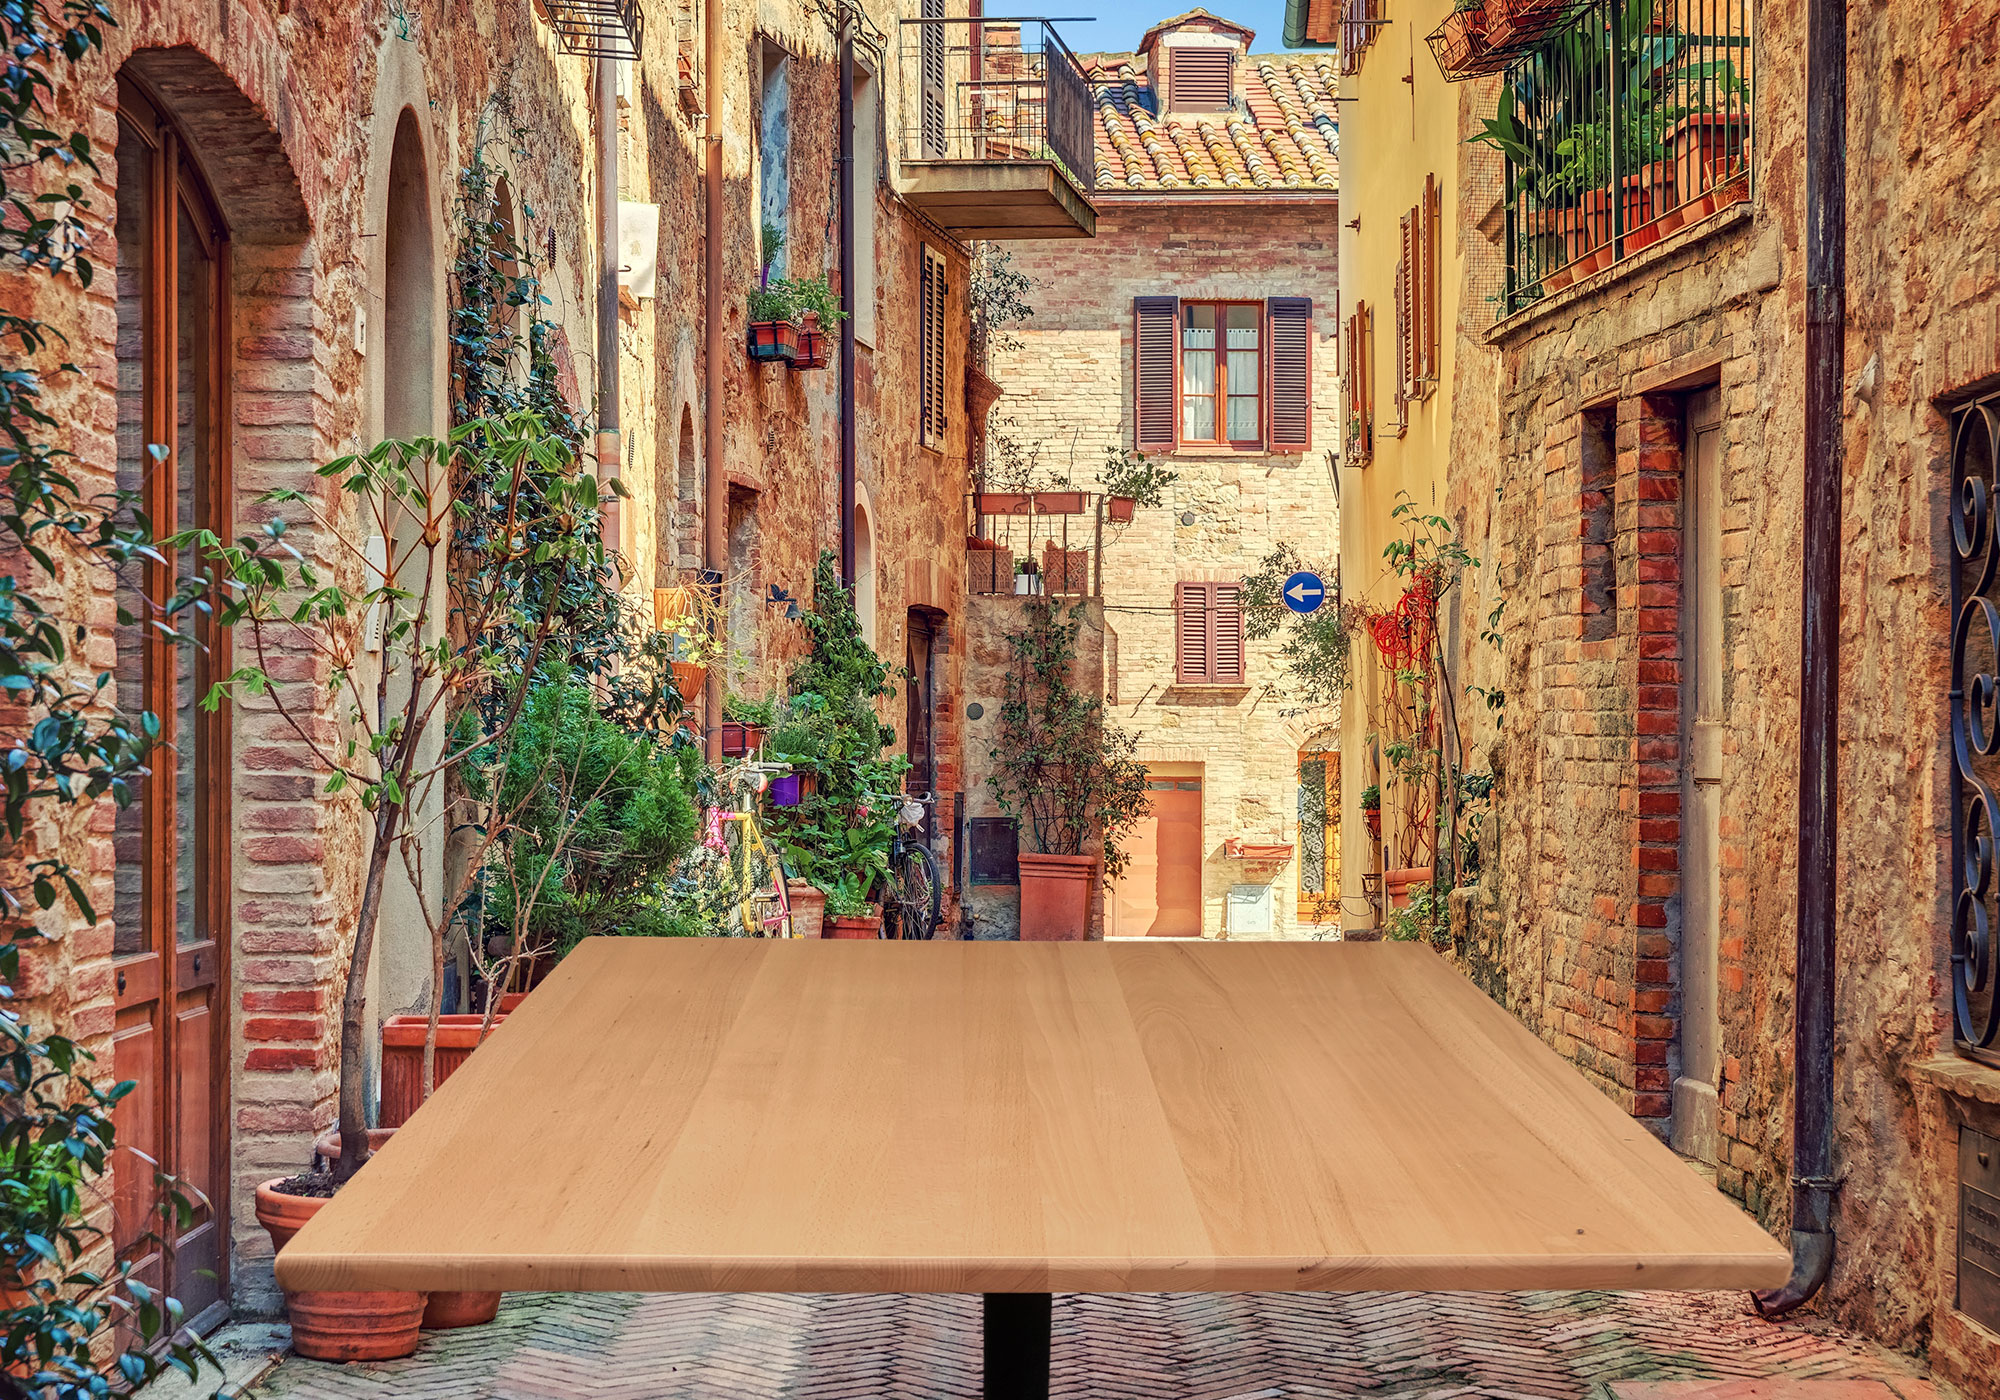 Introducing our new Duratop Tuscany Timber Table Tops!